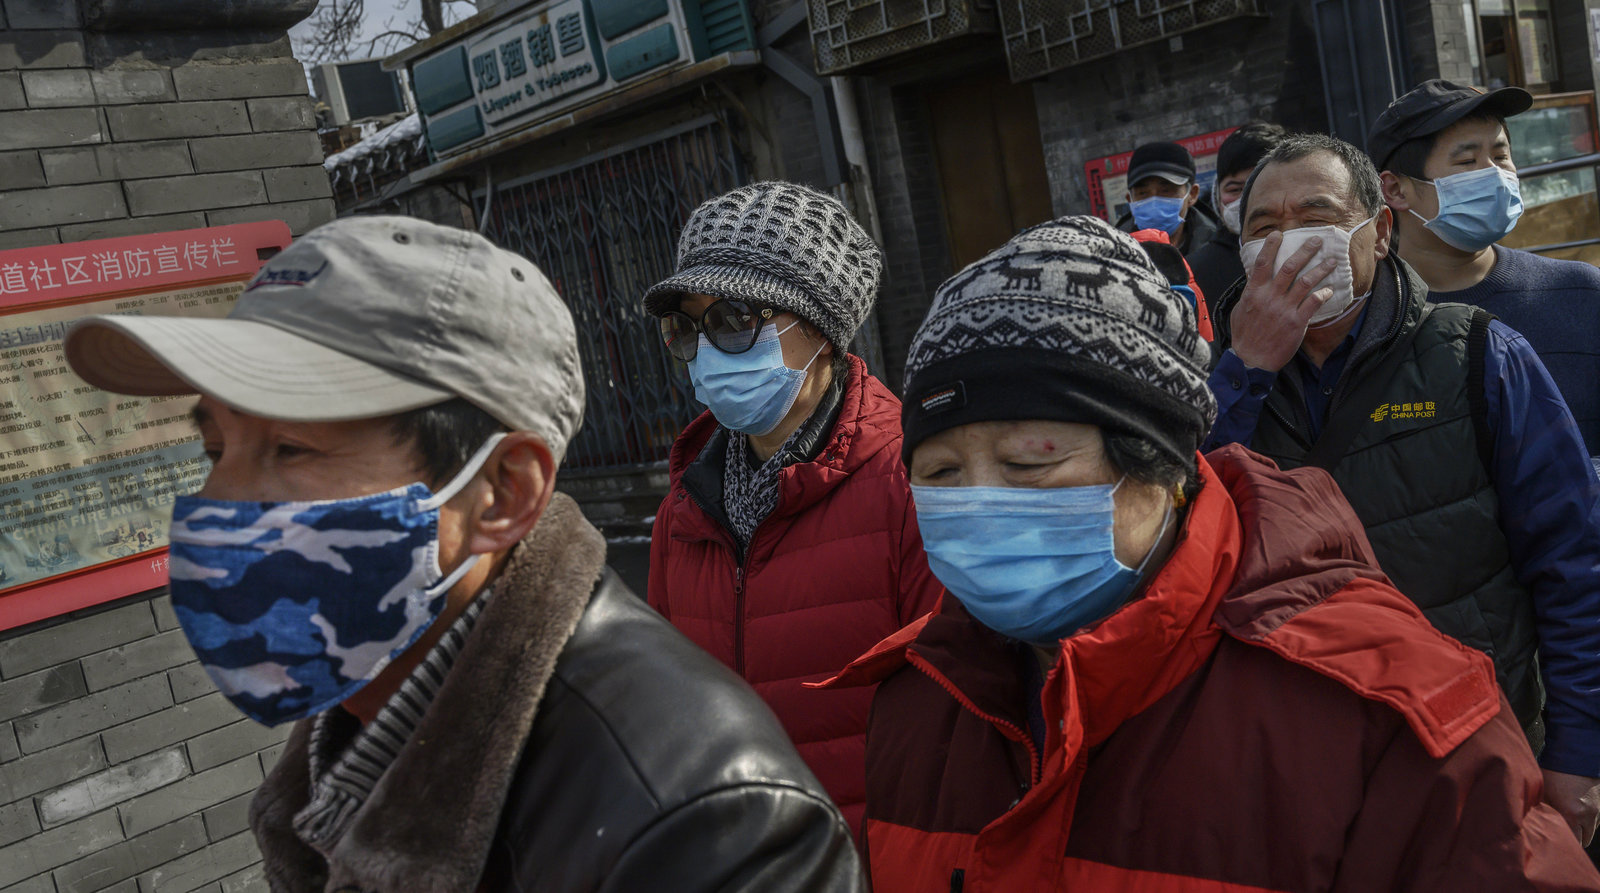 China's Coronavirus Death Toll Surpasses SARS Pandemic